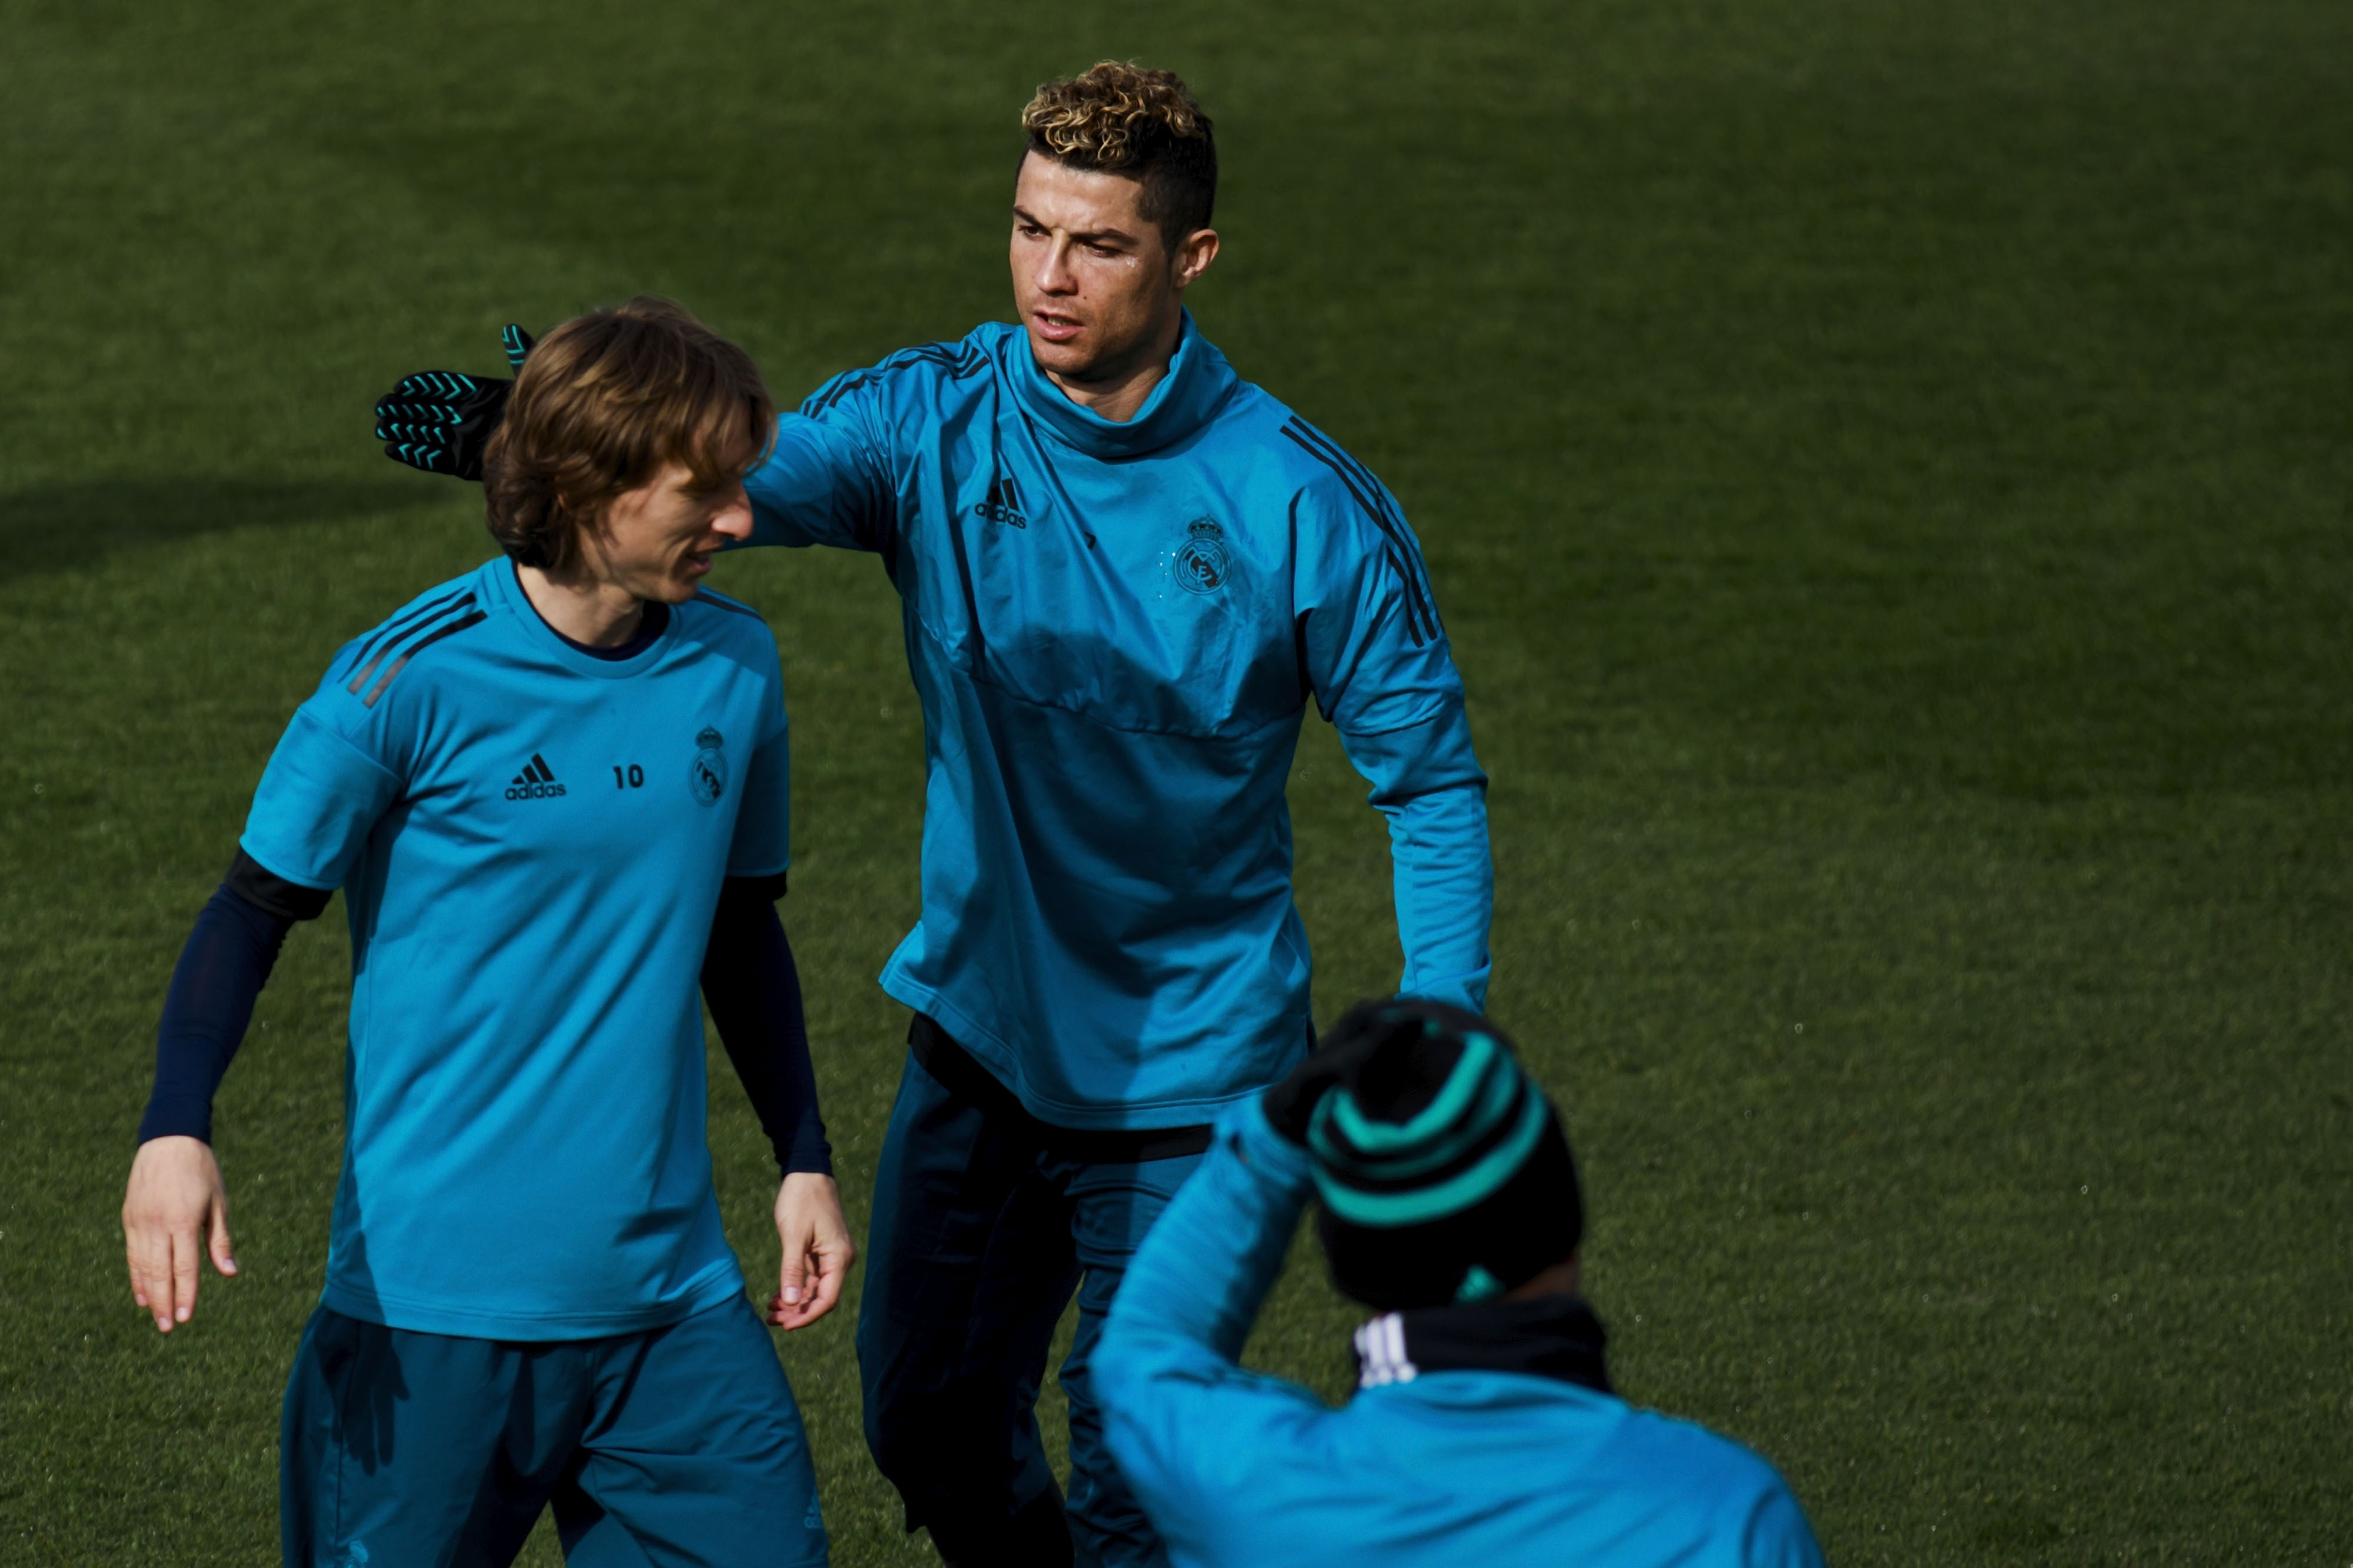 Cristiano Ronaldo (R) of Real Madrid CF jokes with his teammate Luka Modric (L)